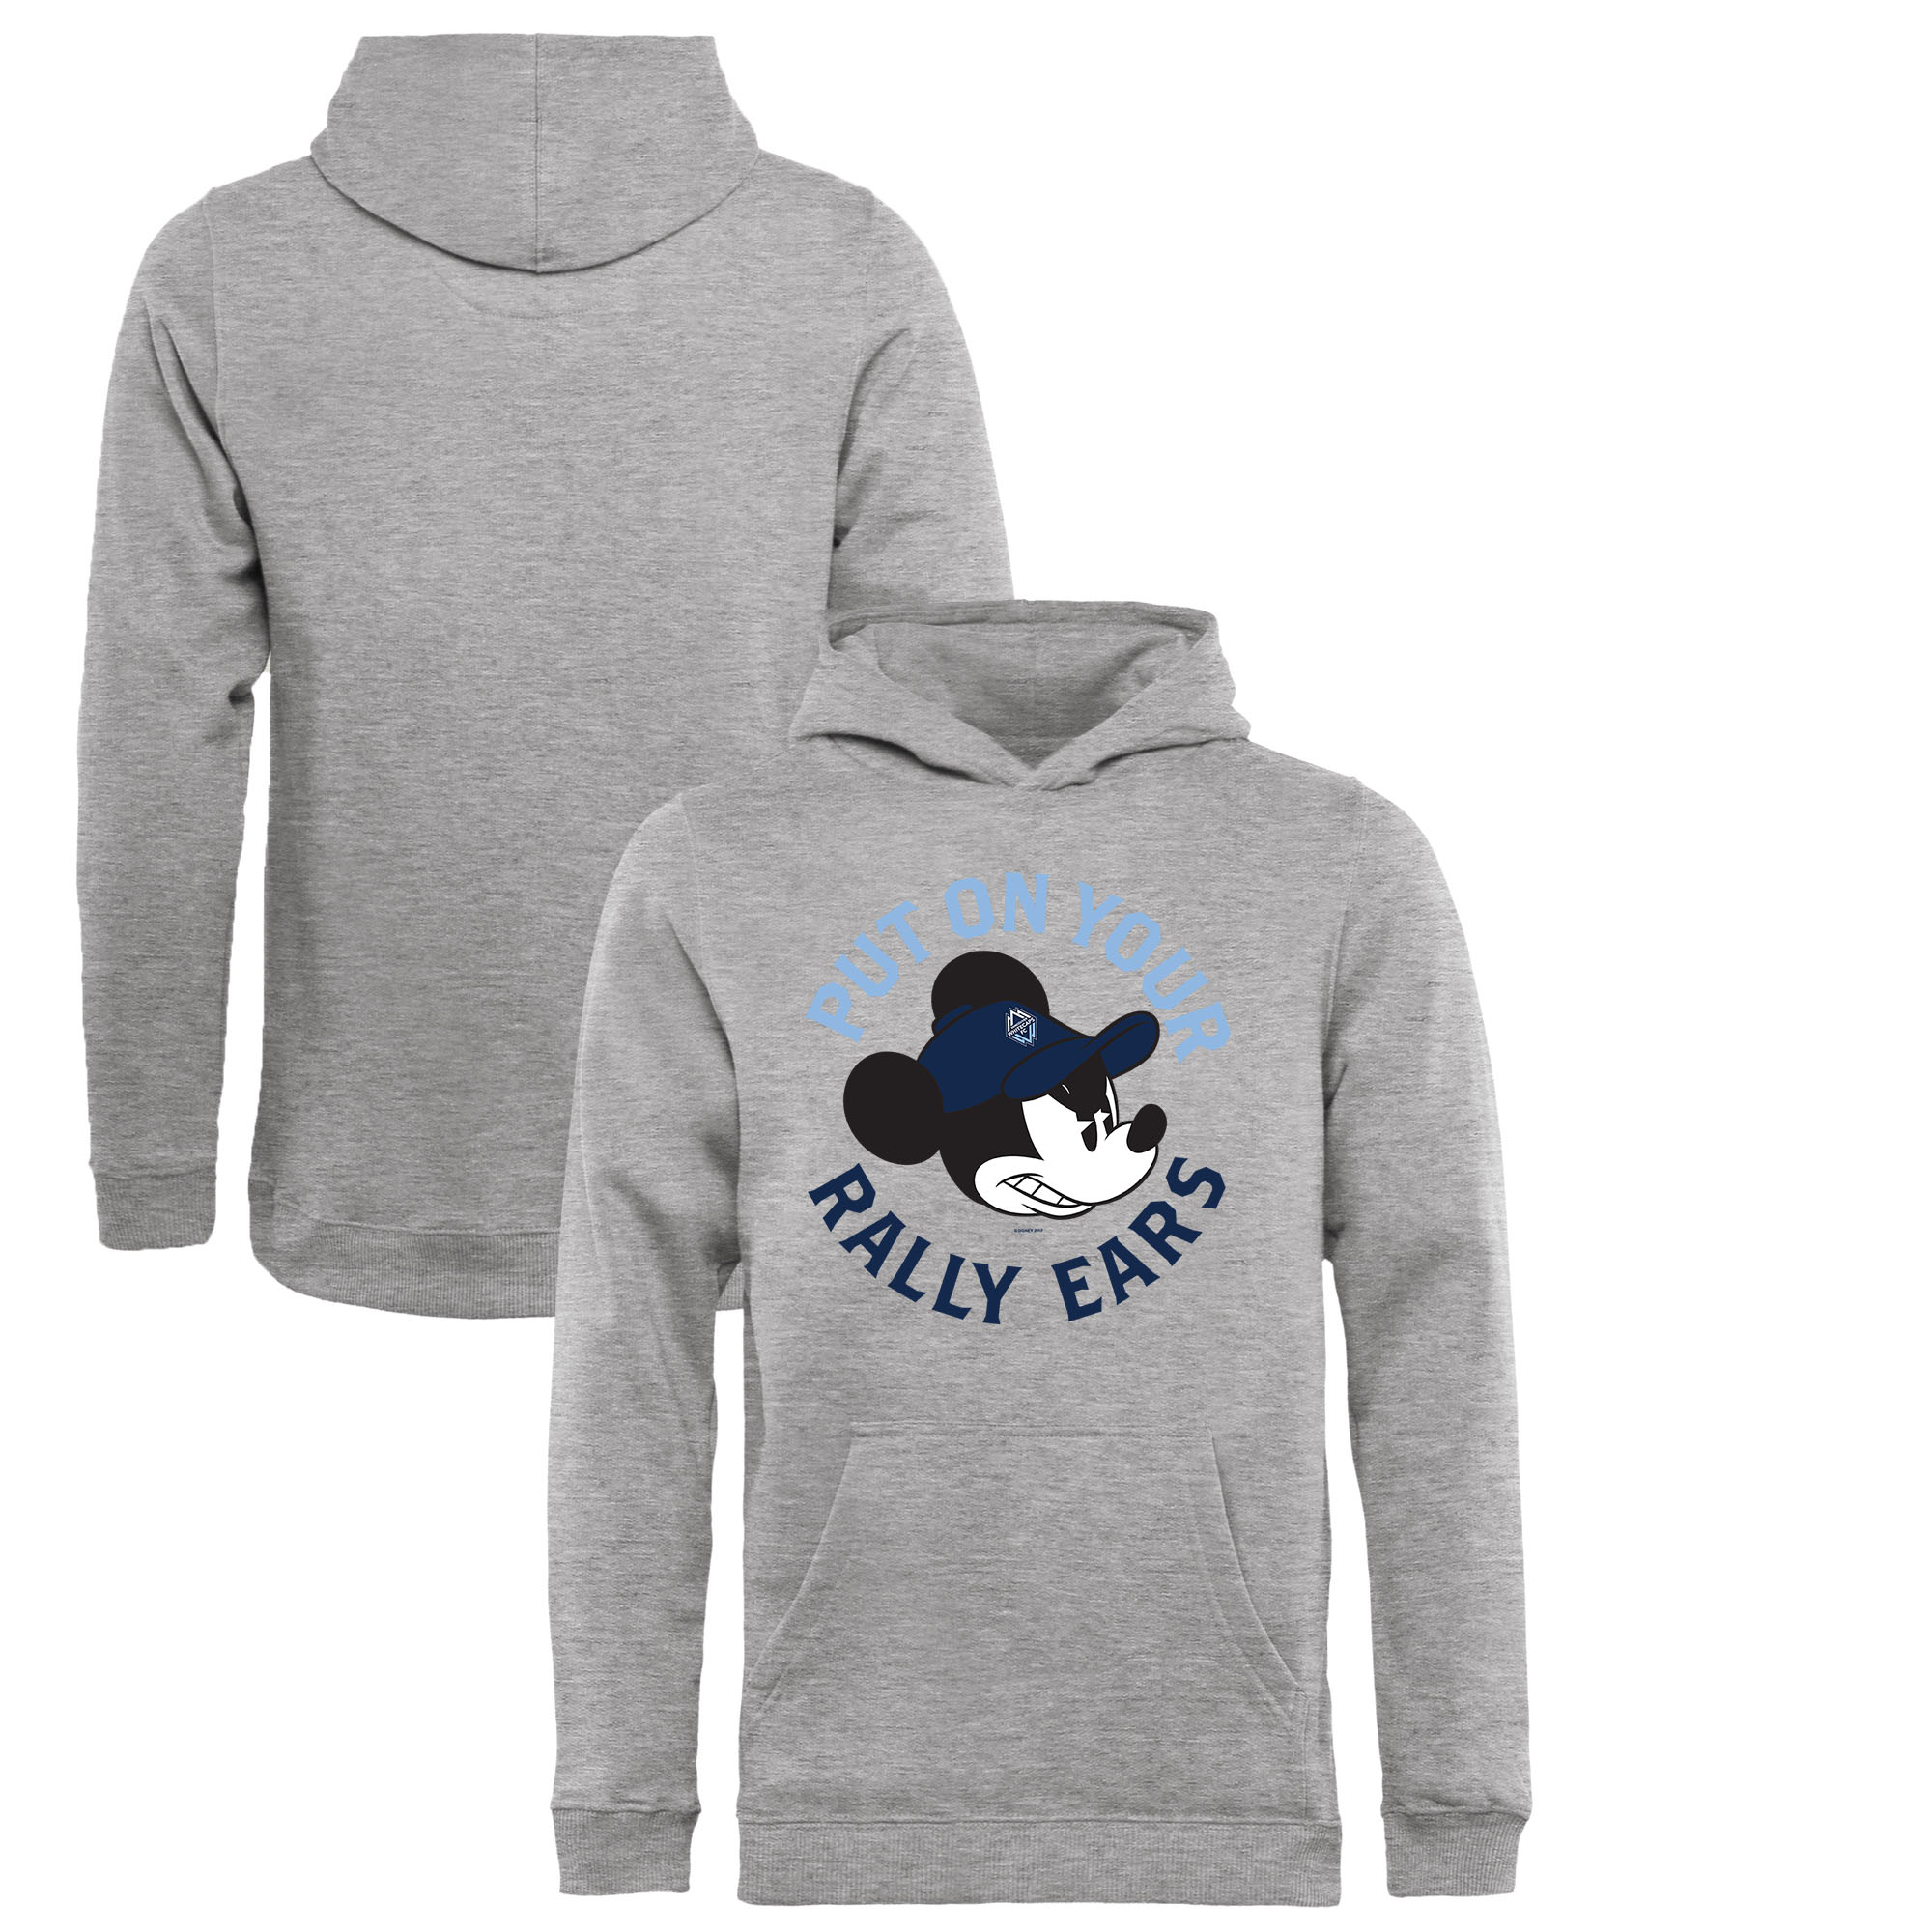 Vancouver Whitecaps FC Fanatics Branded Youth Disney Rally Ears Pullover Hoodie - Heathered Gray